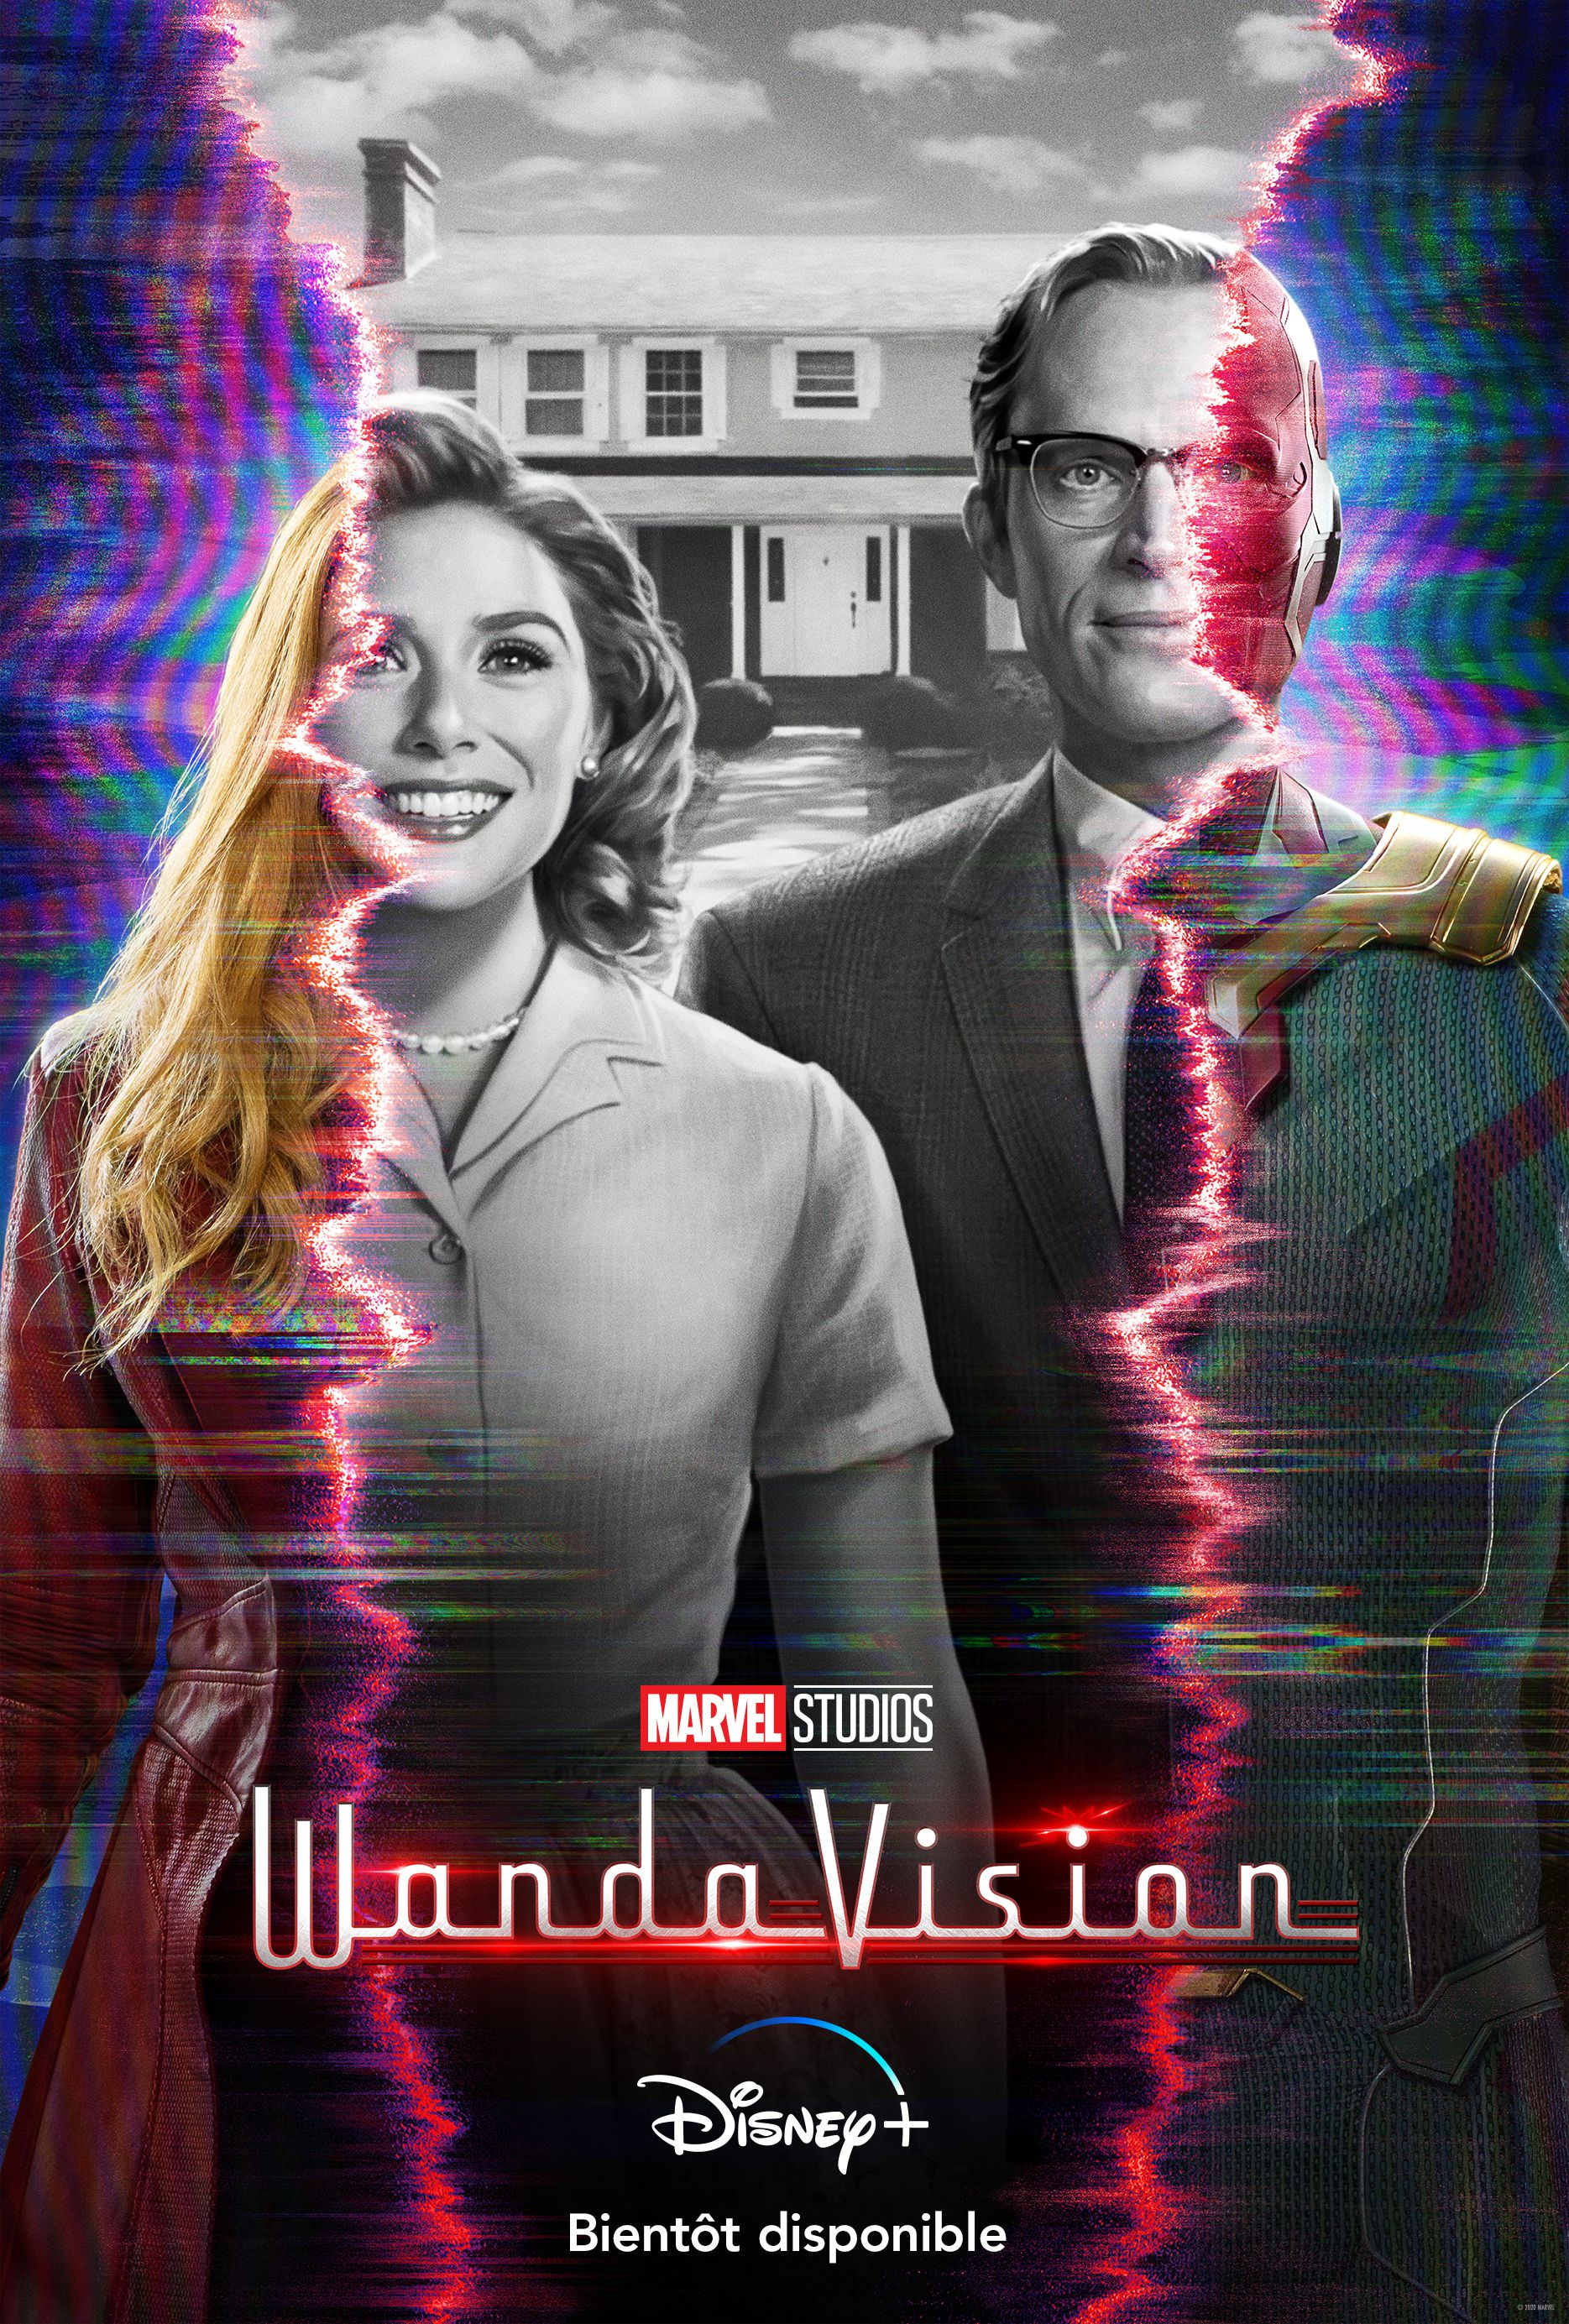 WandaVision - Série (2021) streaming VF gratuit complet